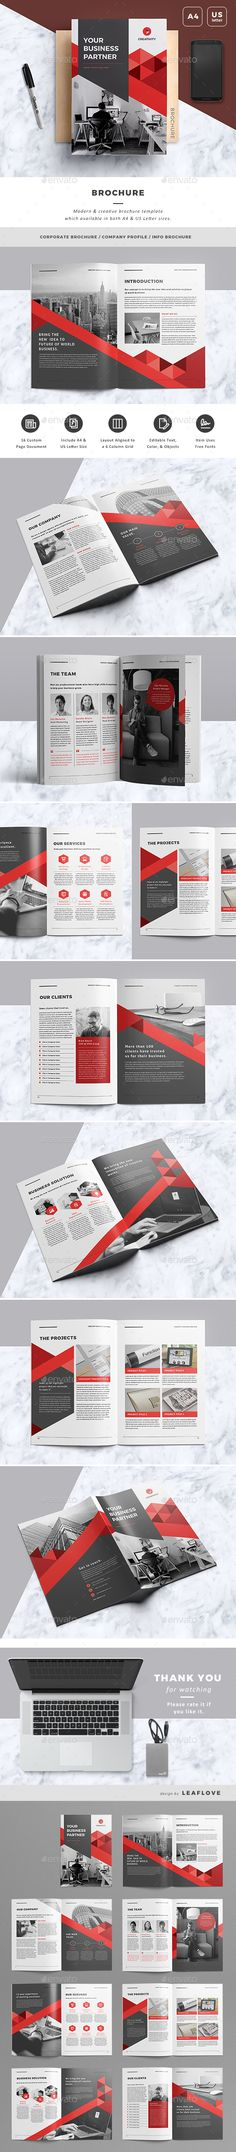 Brochure Template InDesign INDD - 16 Pages, A4 & US Letter Size